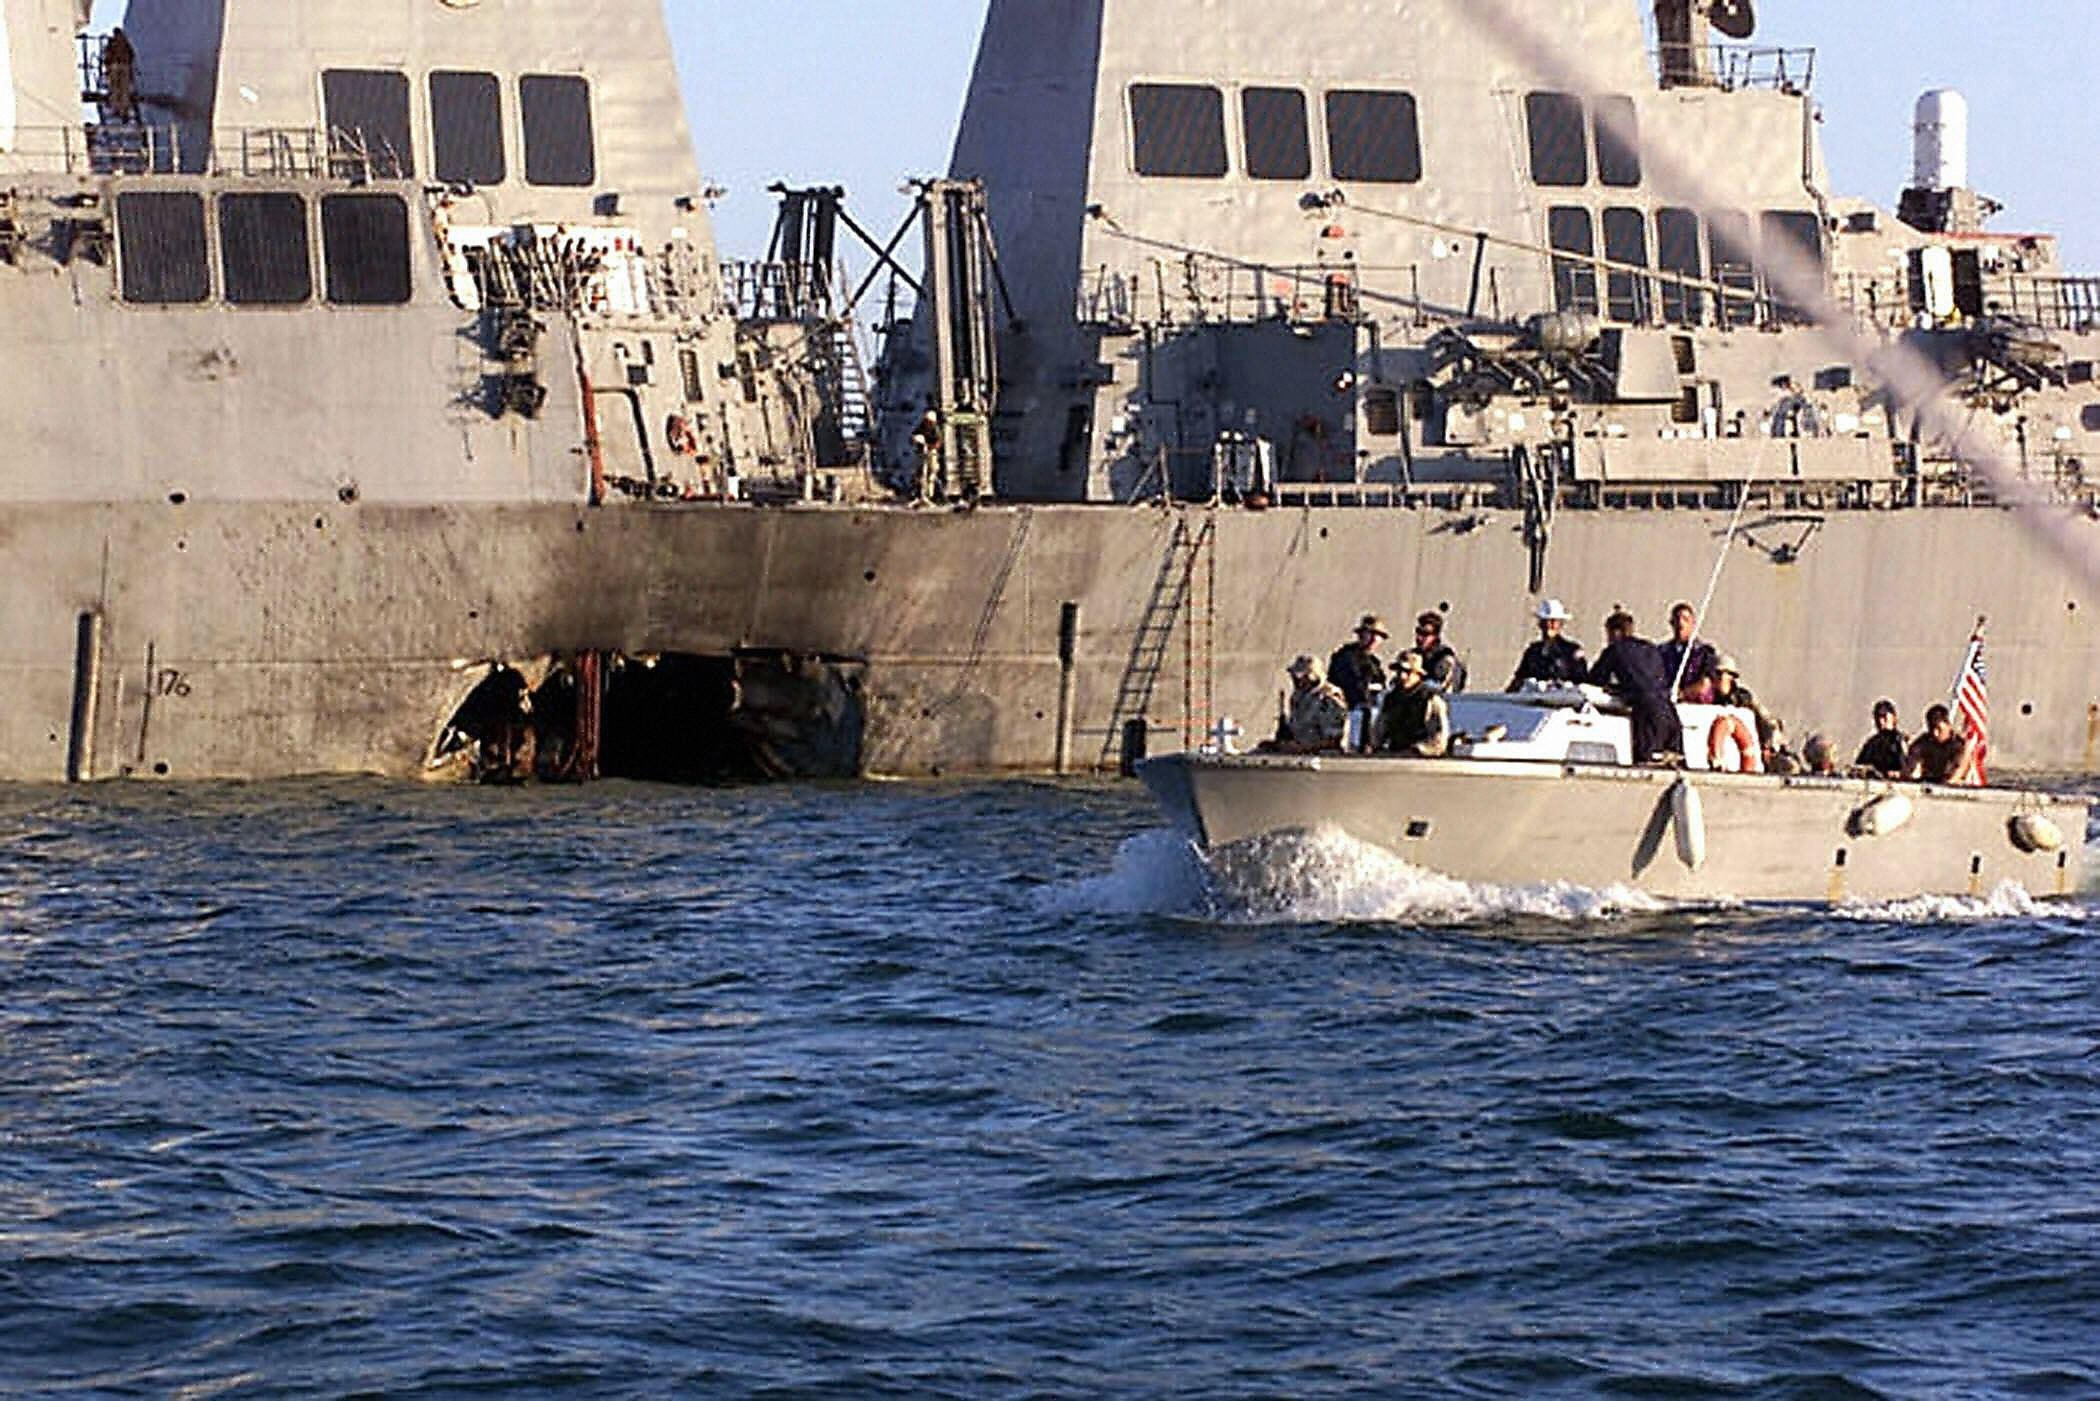 This US Navy file photo shows security personnel patrolling past the damaged USS Cole 18 October 2000 following the 12 October 2000 terrorist bombing attack on the ship in Aden, Yemen. (Credit: LYLE G. BECKER/AFP via Getty Images)